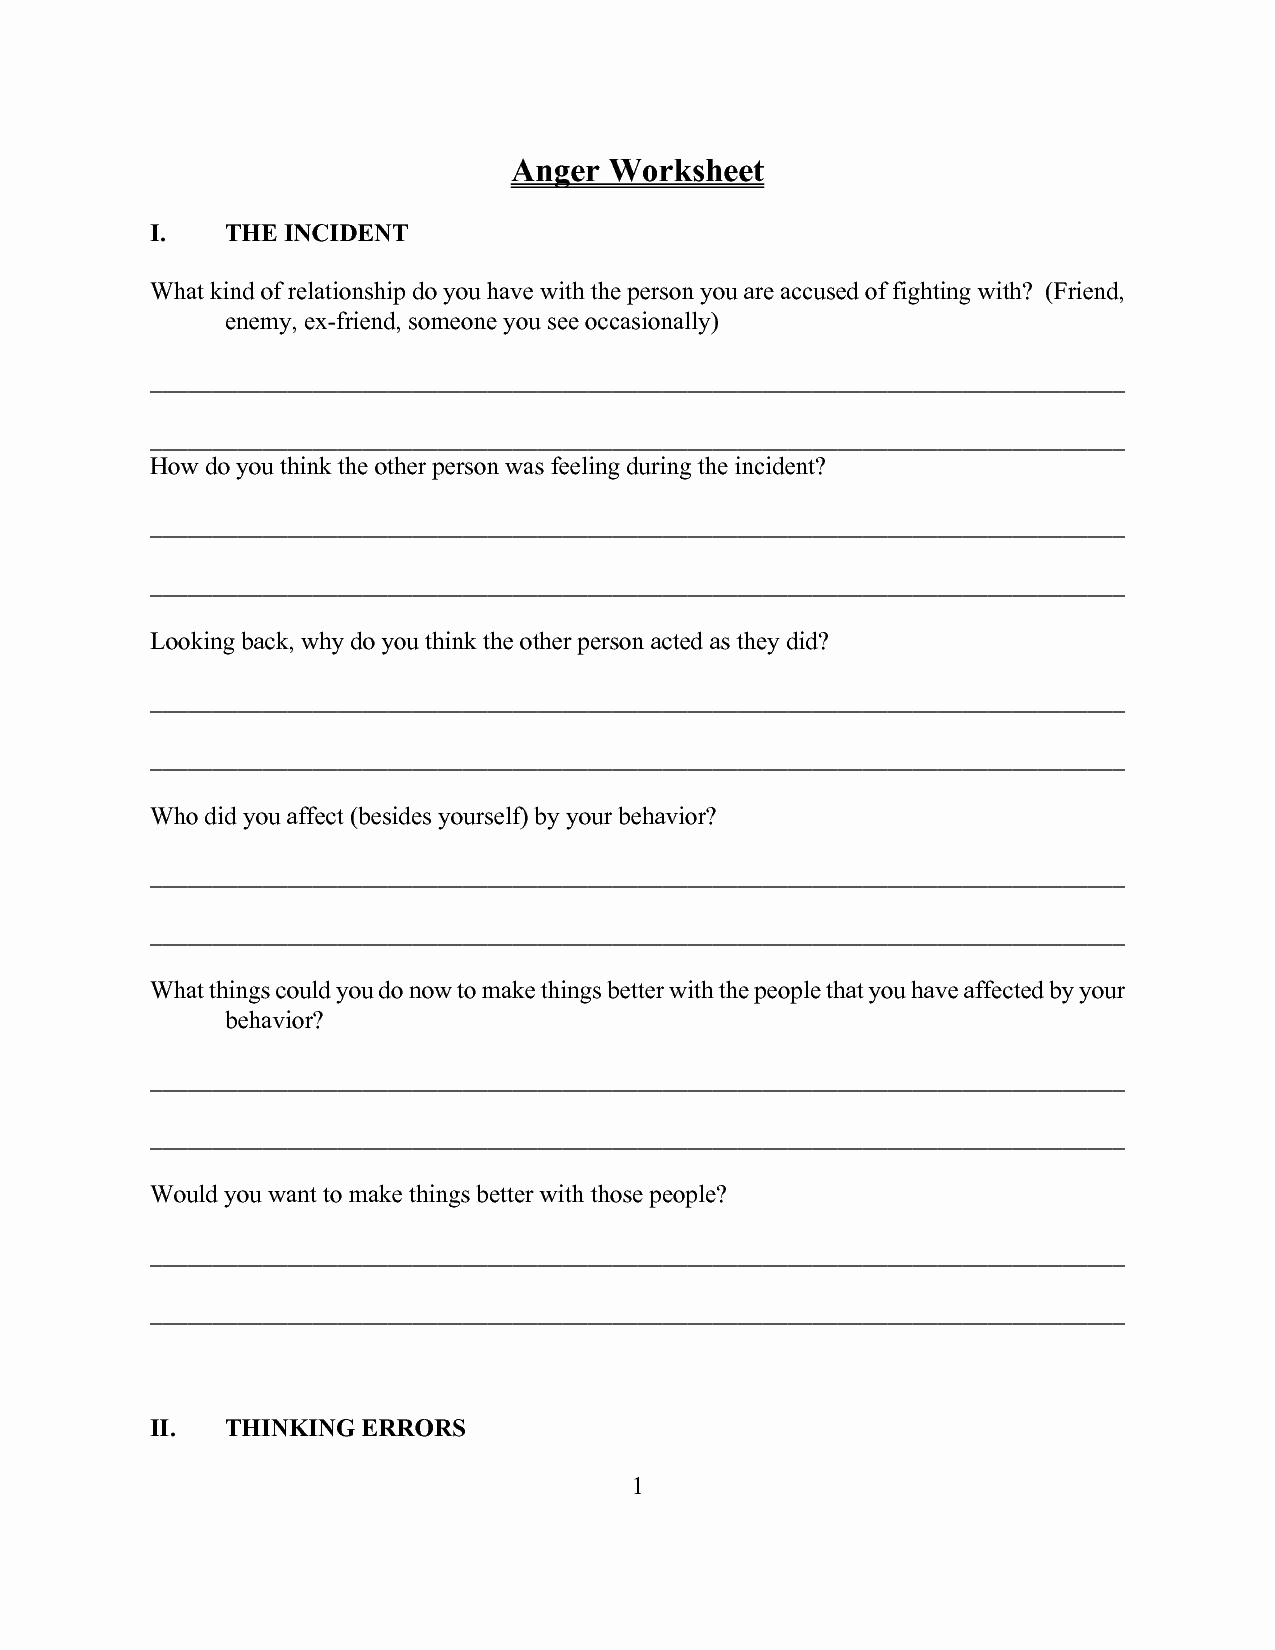 Anger Management Worksheet for Teens Luxury 19 Best Of Anger Worksheets for Adults Anger